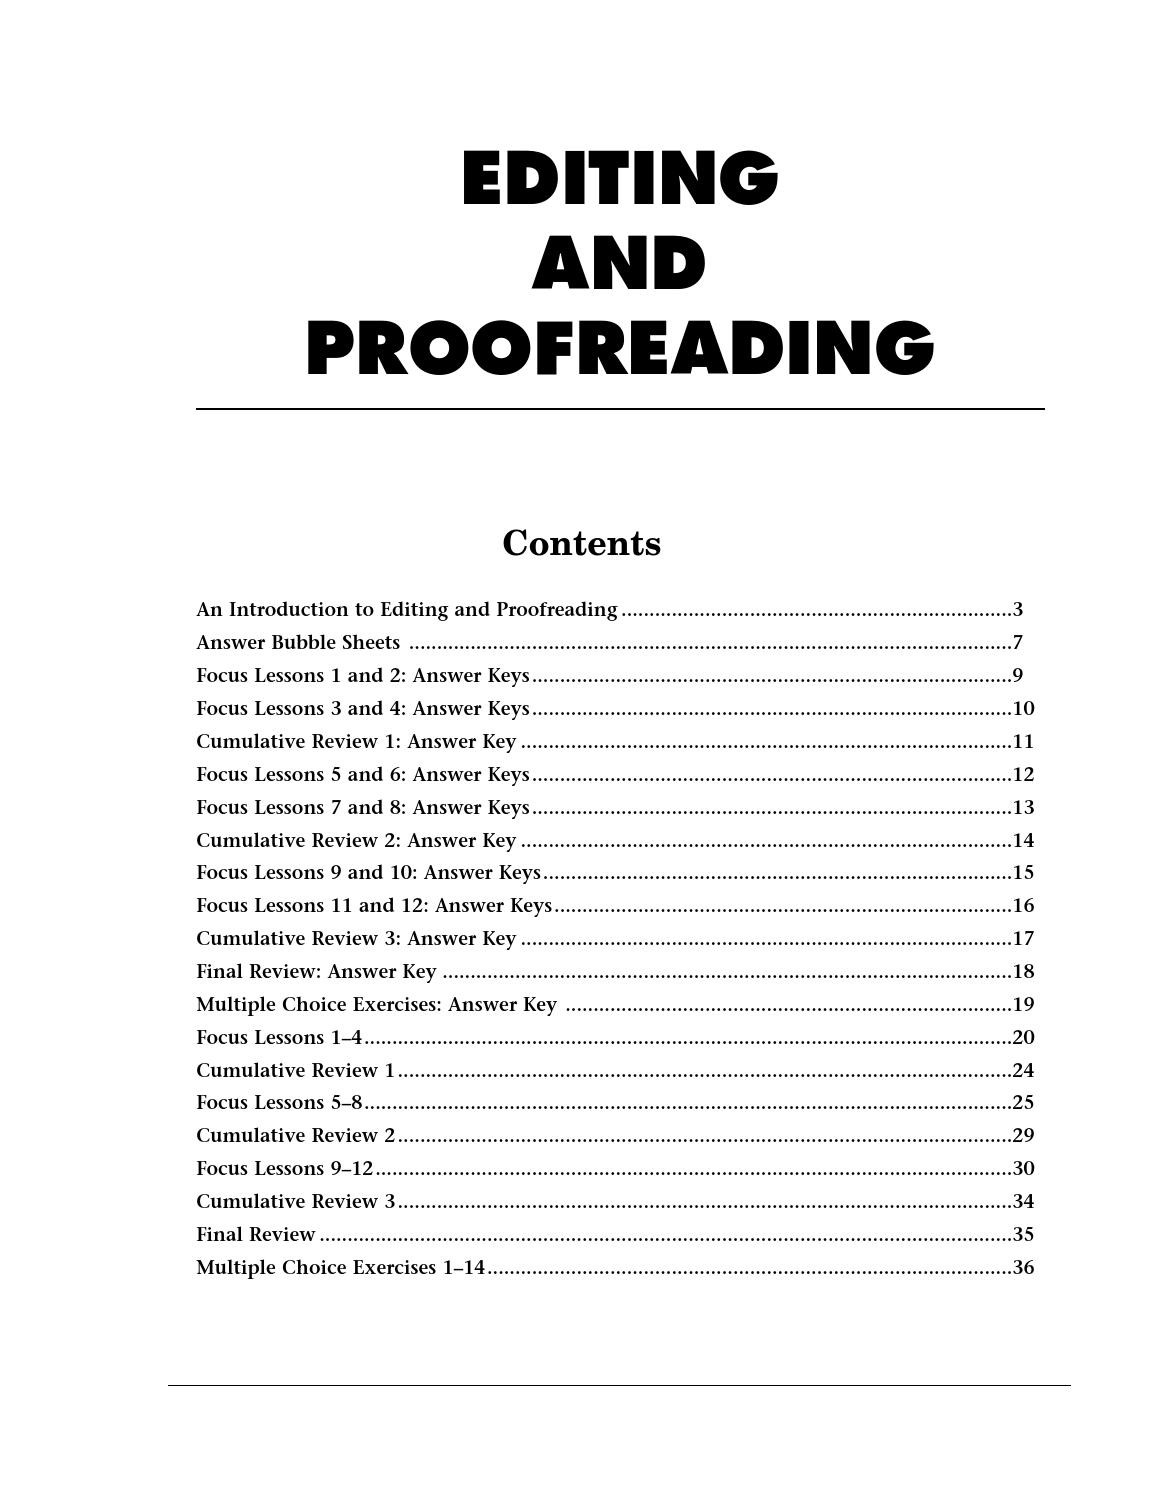 Proofreading Worksheets High School Glencoe Proofreading by Belen Fagundez issuu